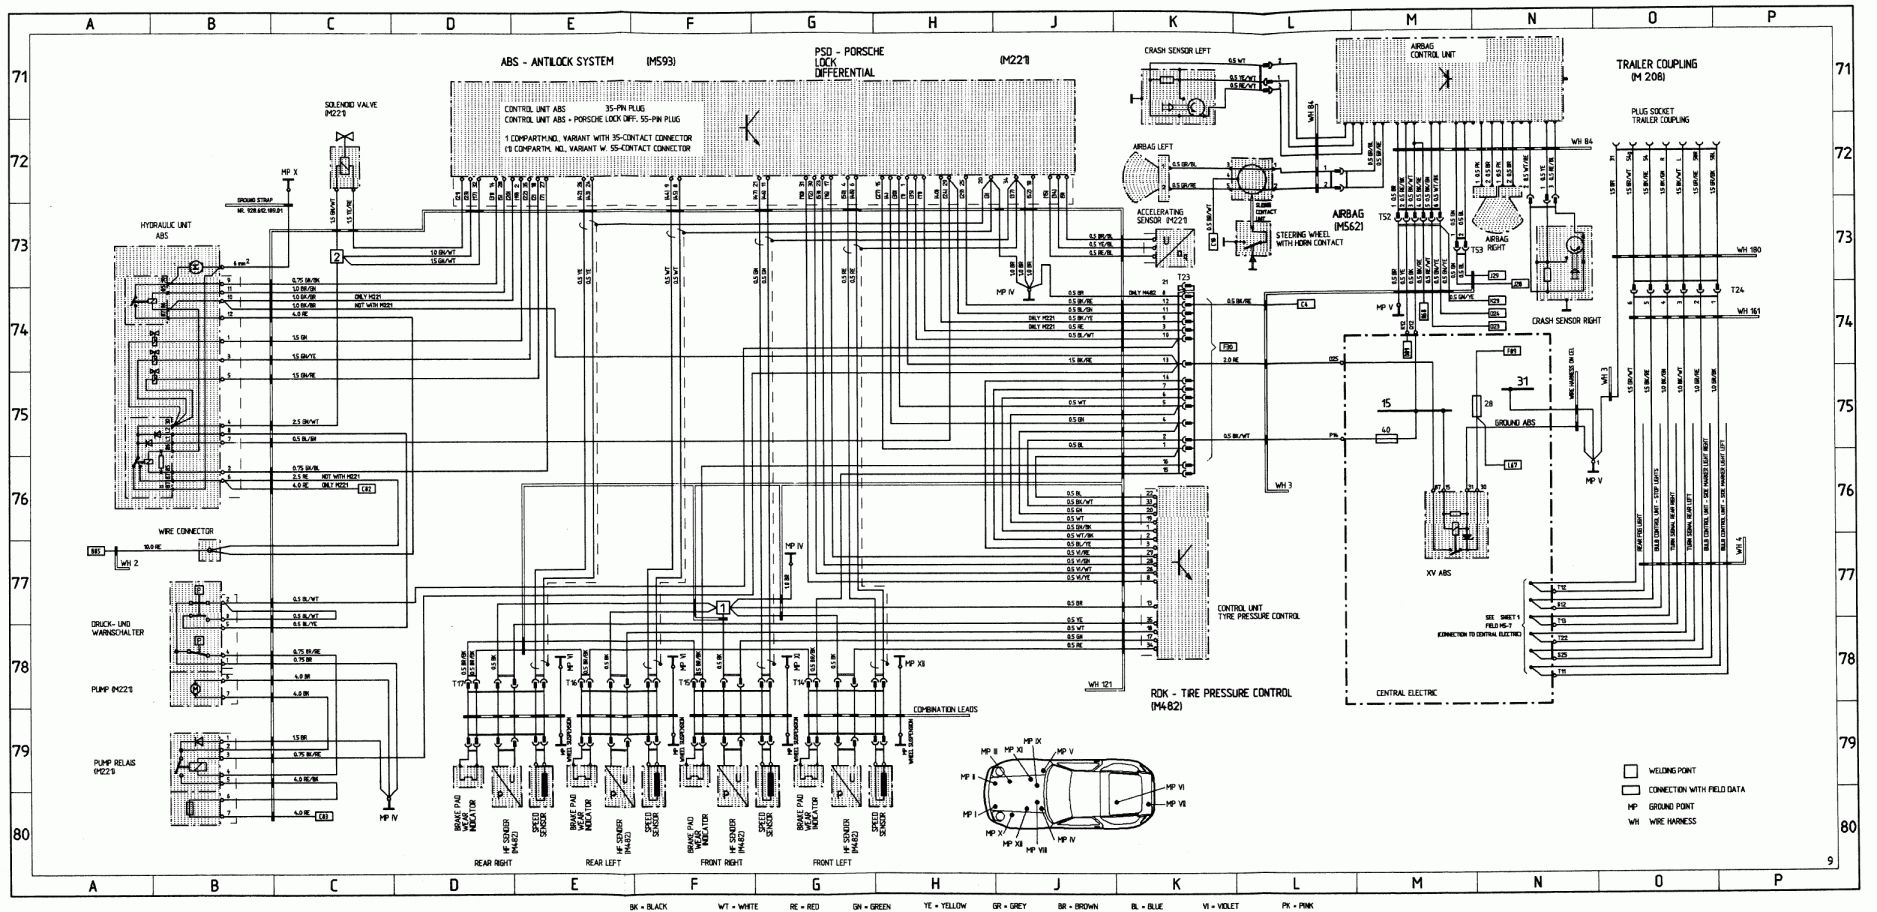 1998 Bmw 750il Wiring Diagram - wiring diagram load-cloud -  load-cloud.albergoinsicilia.it | 1998 Bmw 750il Wiring Diagram |  | load-cloud.albergoinsicilia.it